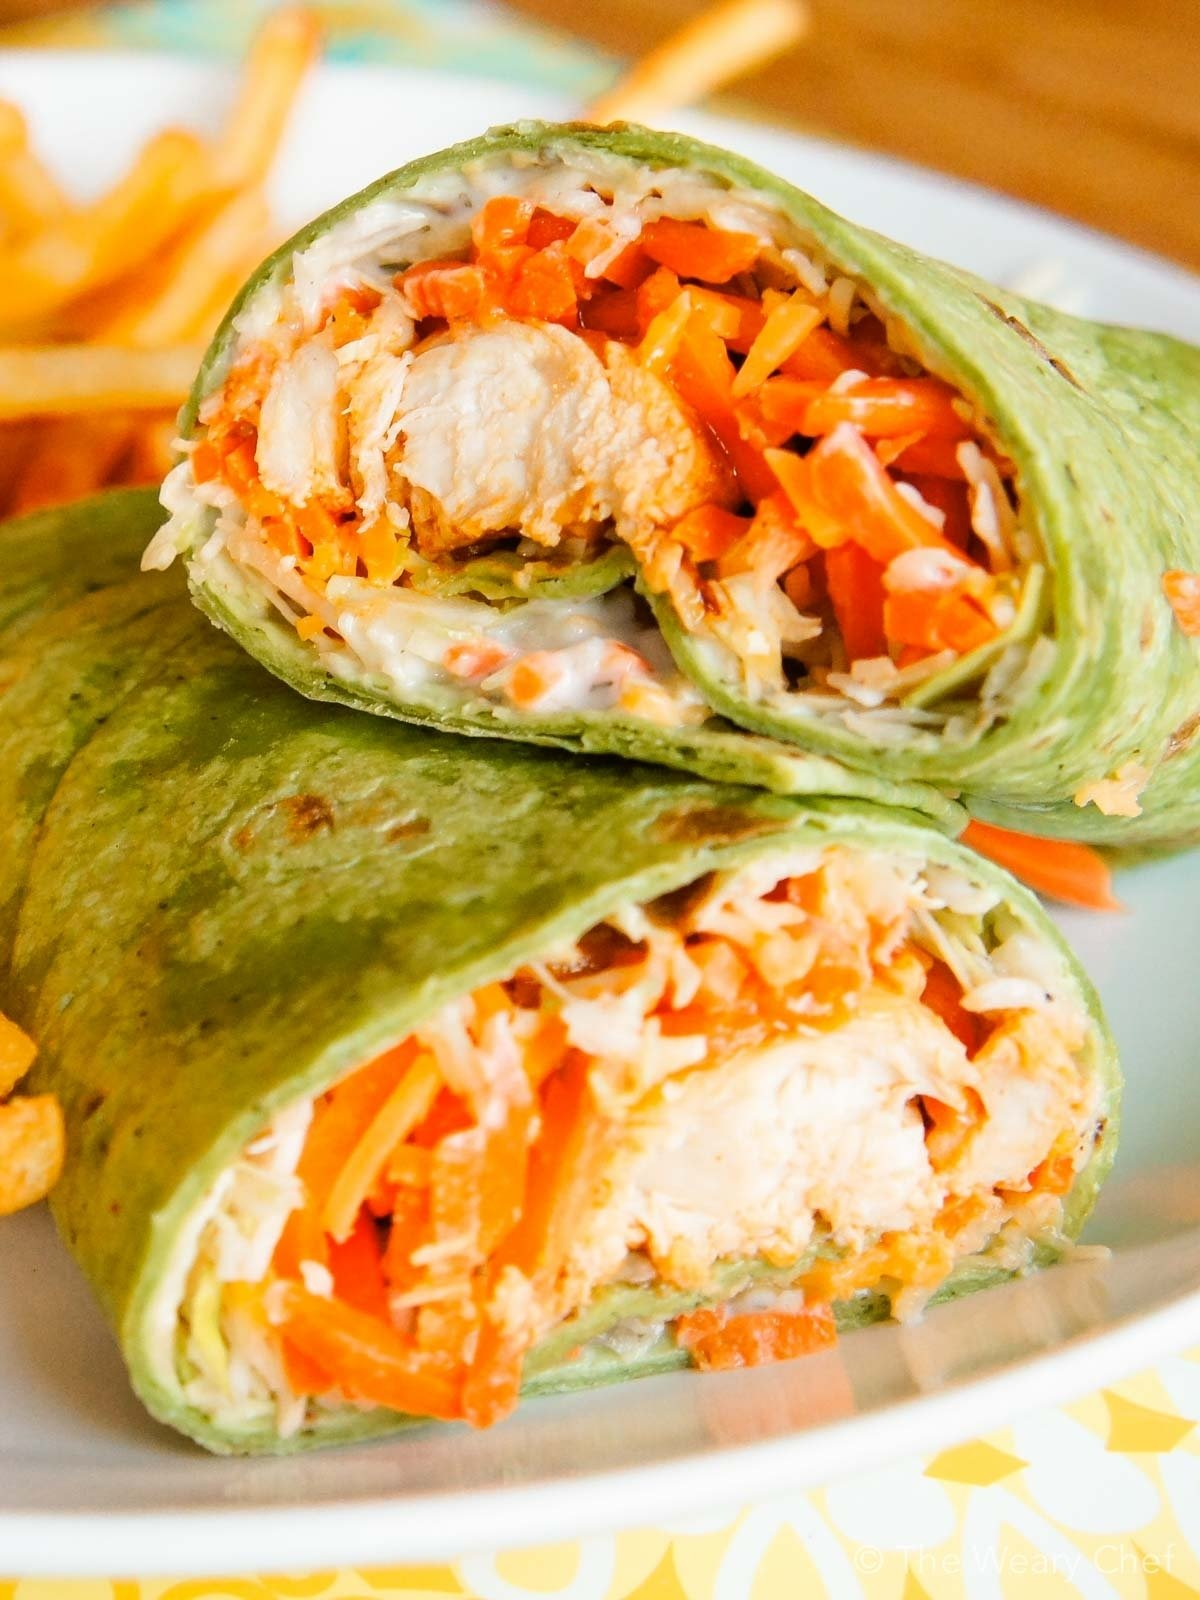 10 Most Recommended Simple Dinner Ideas For 2 buffalo chicken wraps a fun and tasty dinner idea the weary chef 3 2021